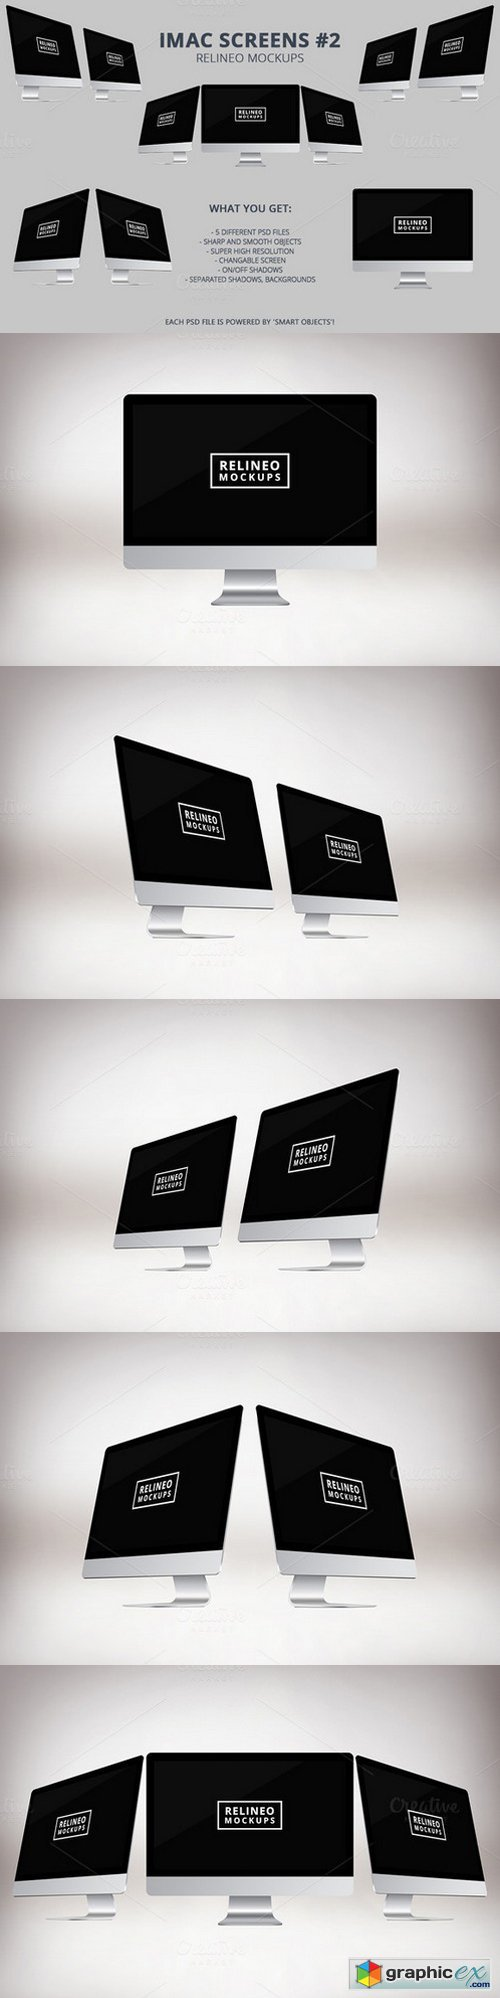 Relineo iMac Mockup Pack - #2